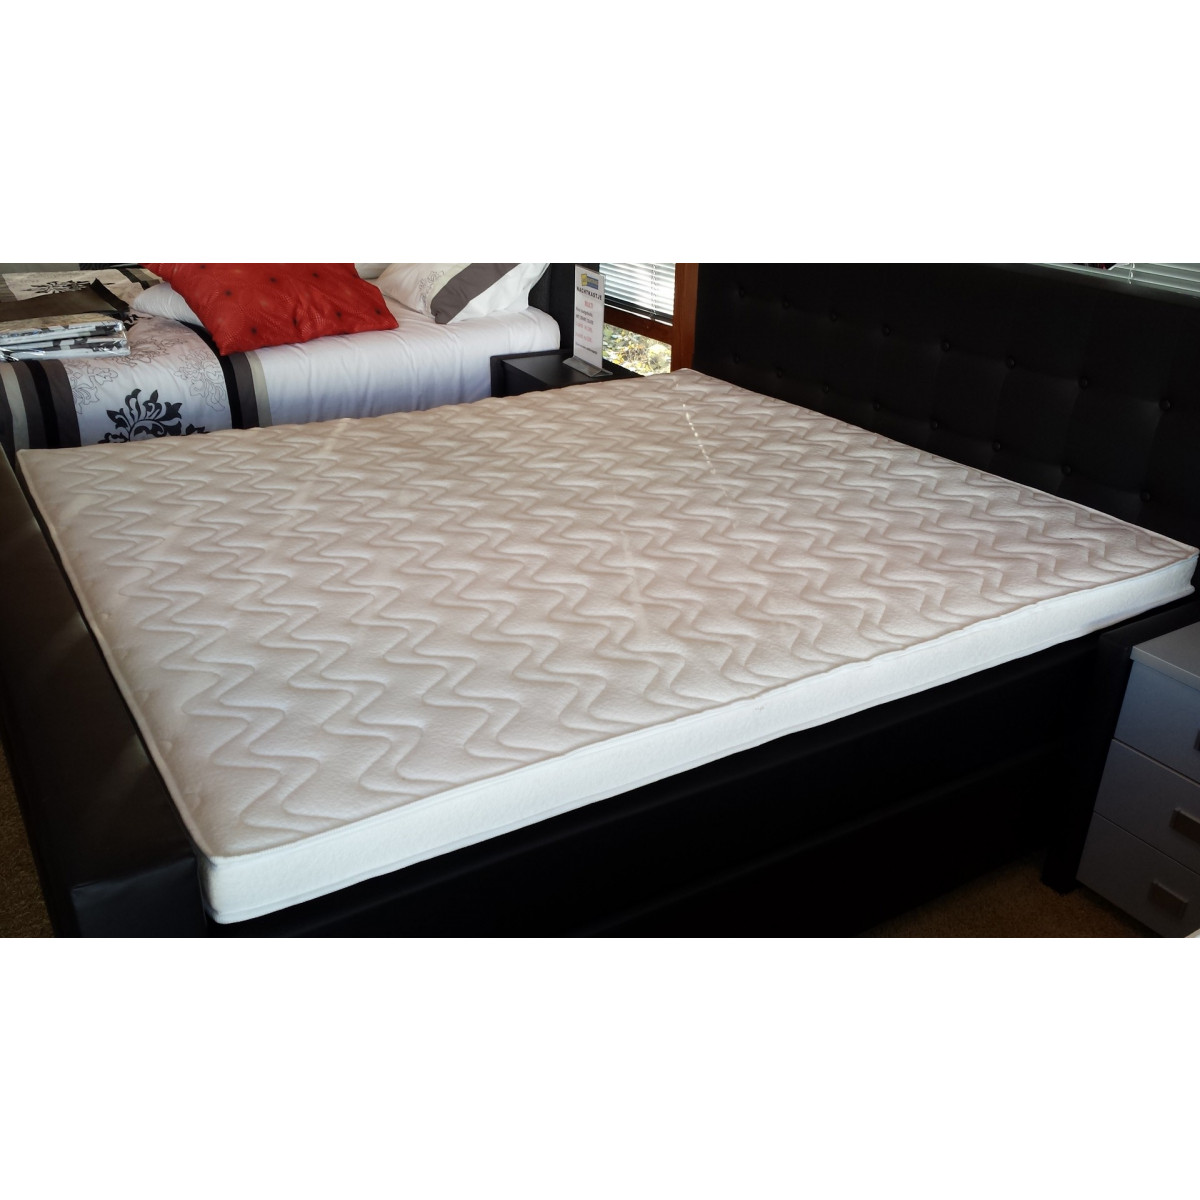 Scänfort topmatras latex 9cm